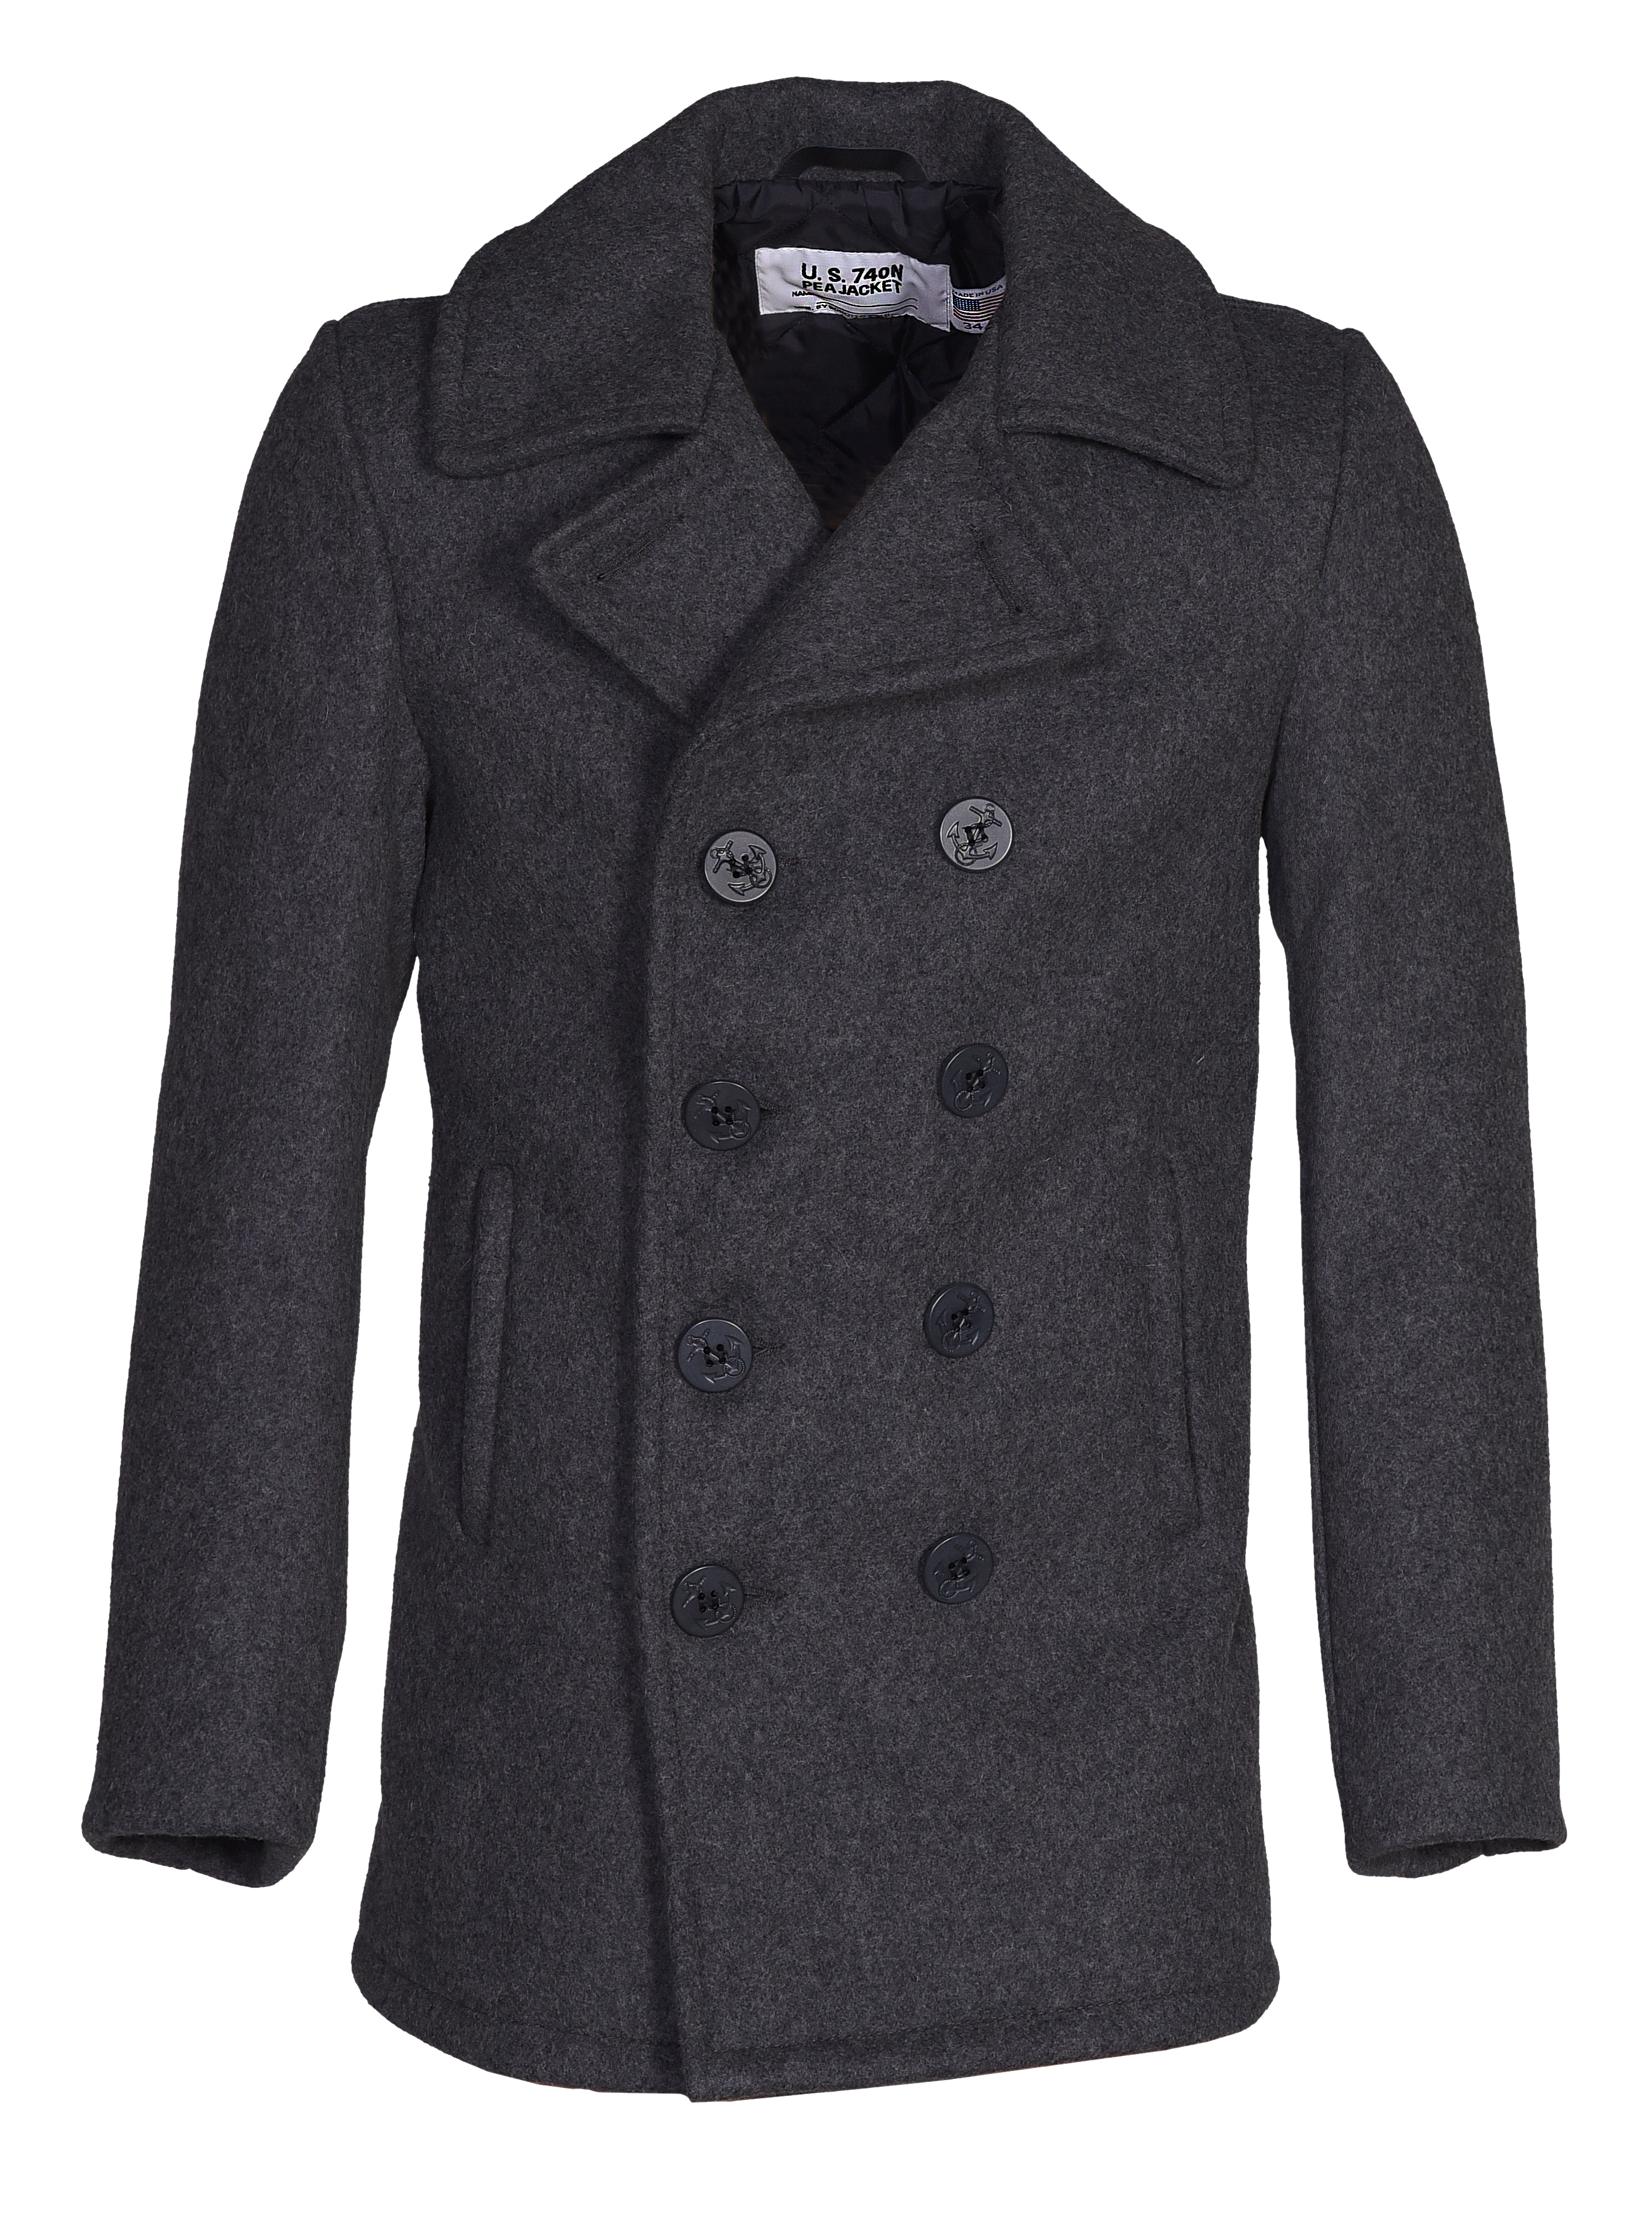 select for newest lowest discount new styles Schott N.Y.C. 740 The Original Navy Pea Coat